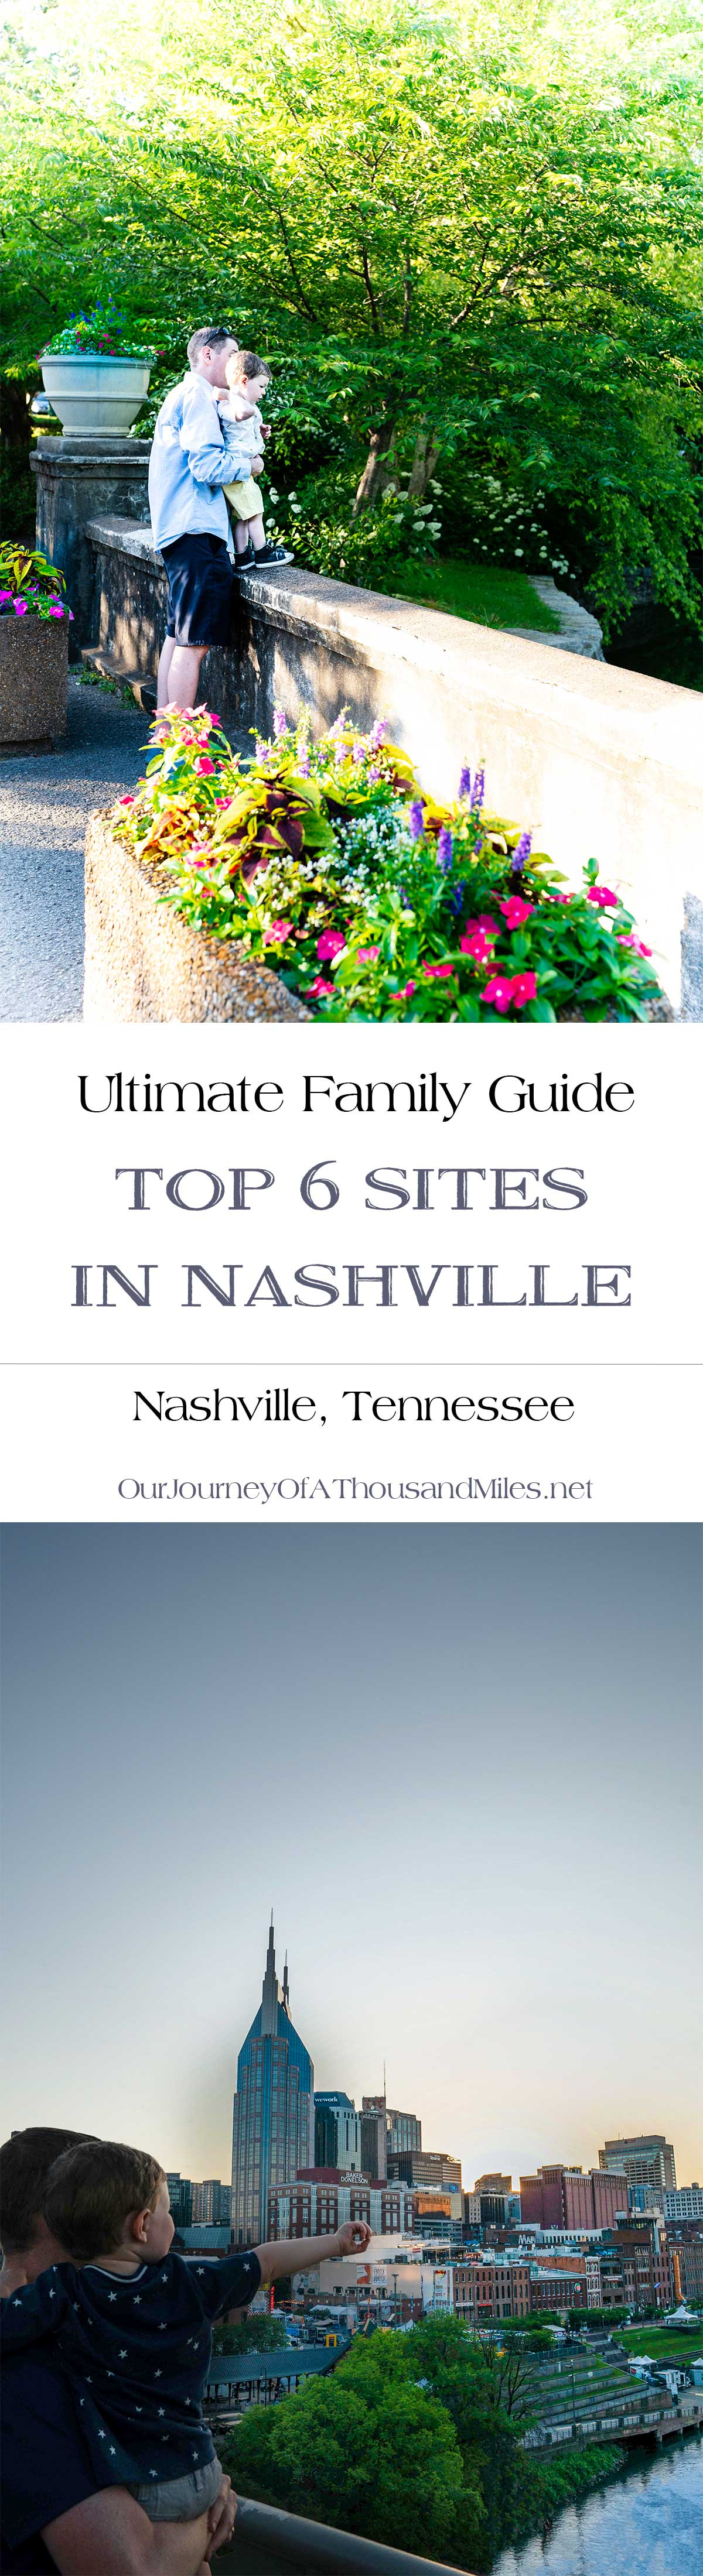 Ultimate-Family-Guide-to-the-Top-Six-Sites-In-Nashville-TN